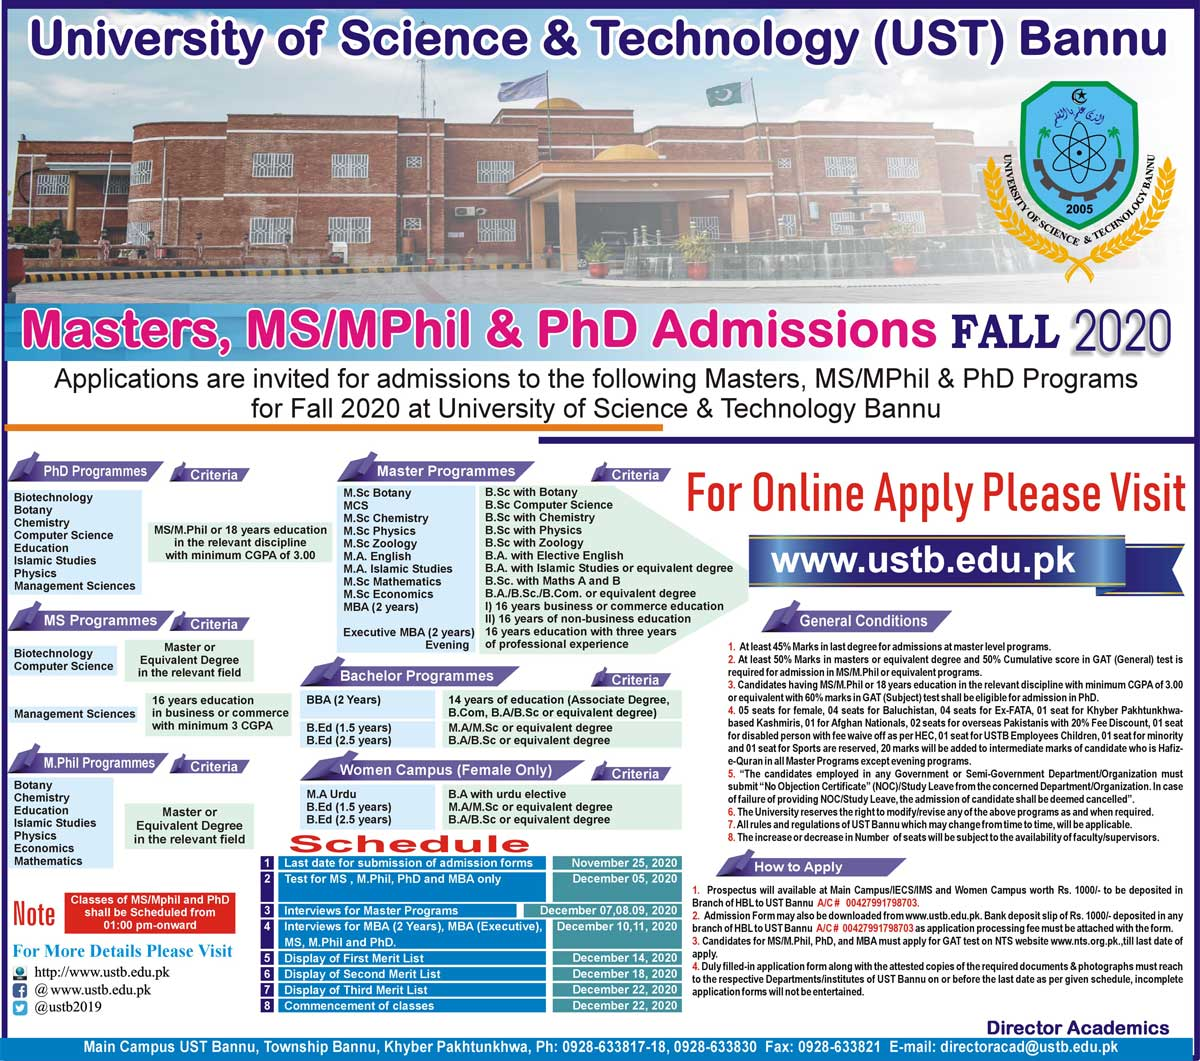 USTB University of Science Technology Bannu Admissions NTS Roll No Slip Masters, MS/M.Phil & PhD